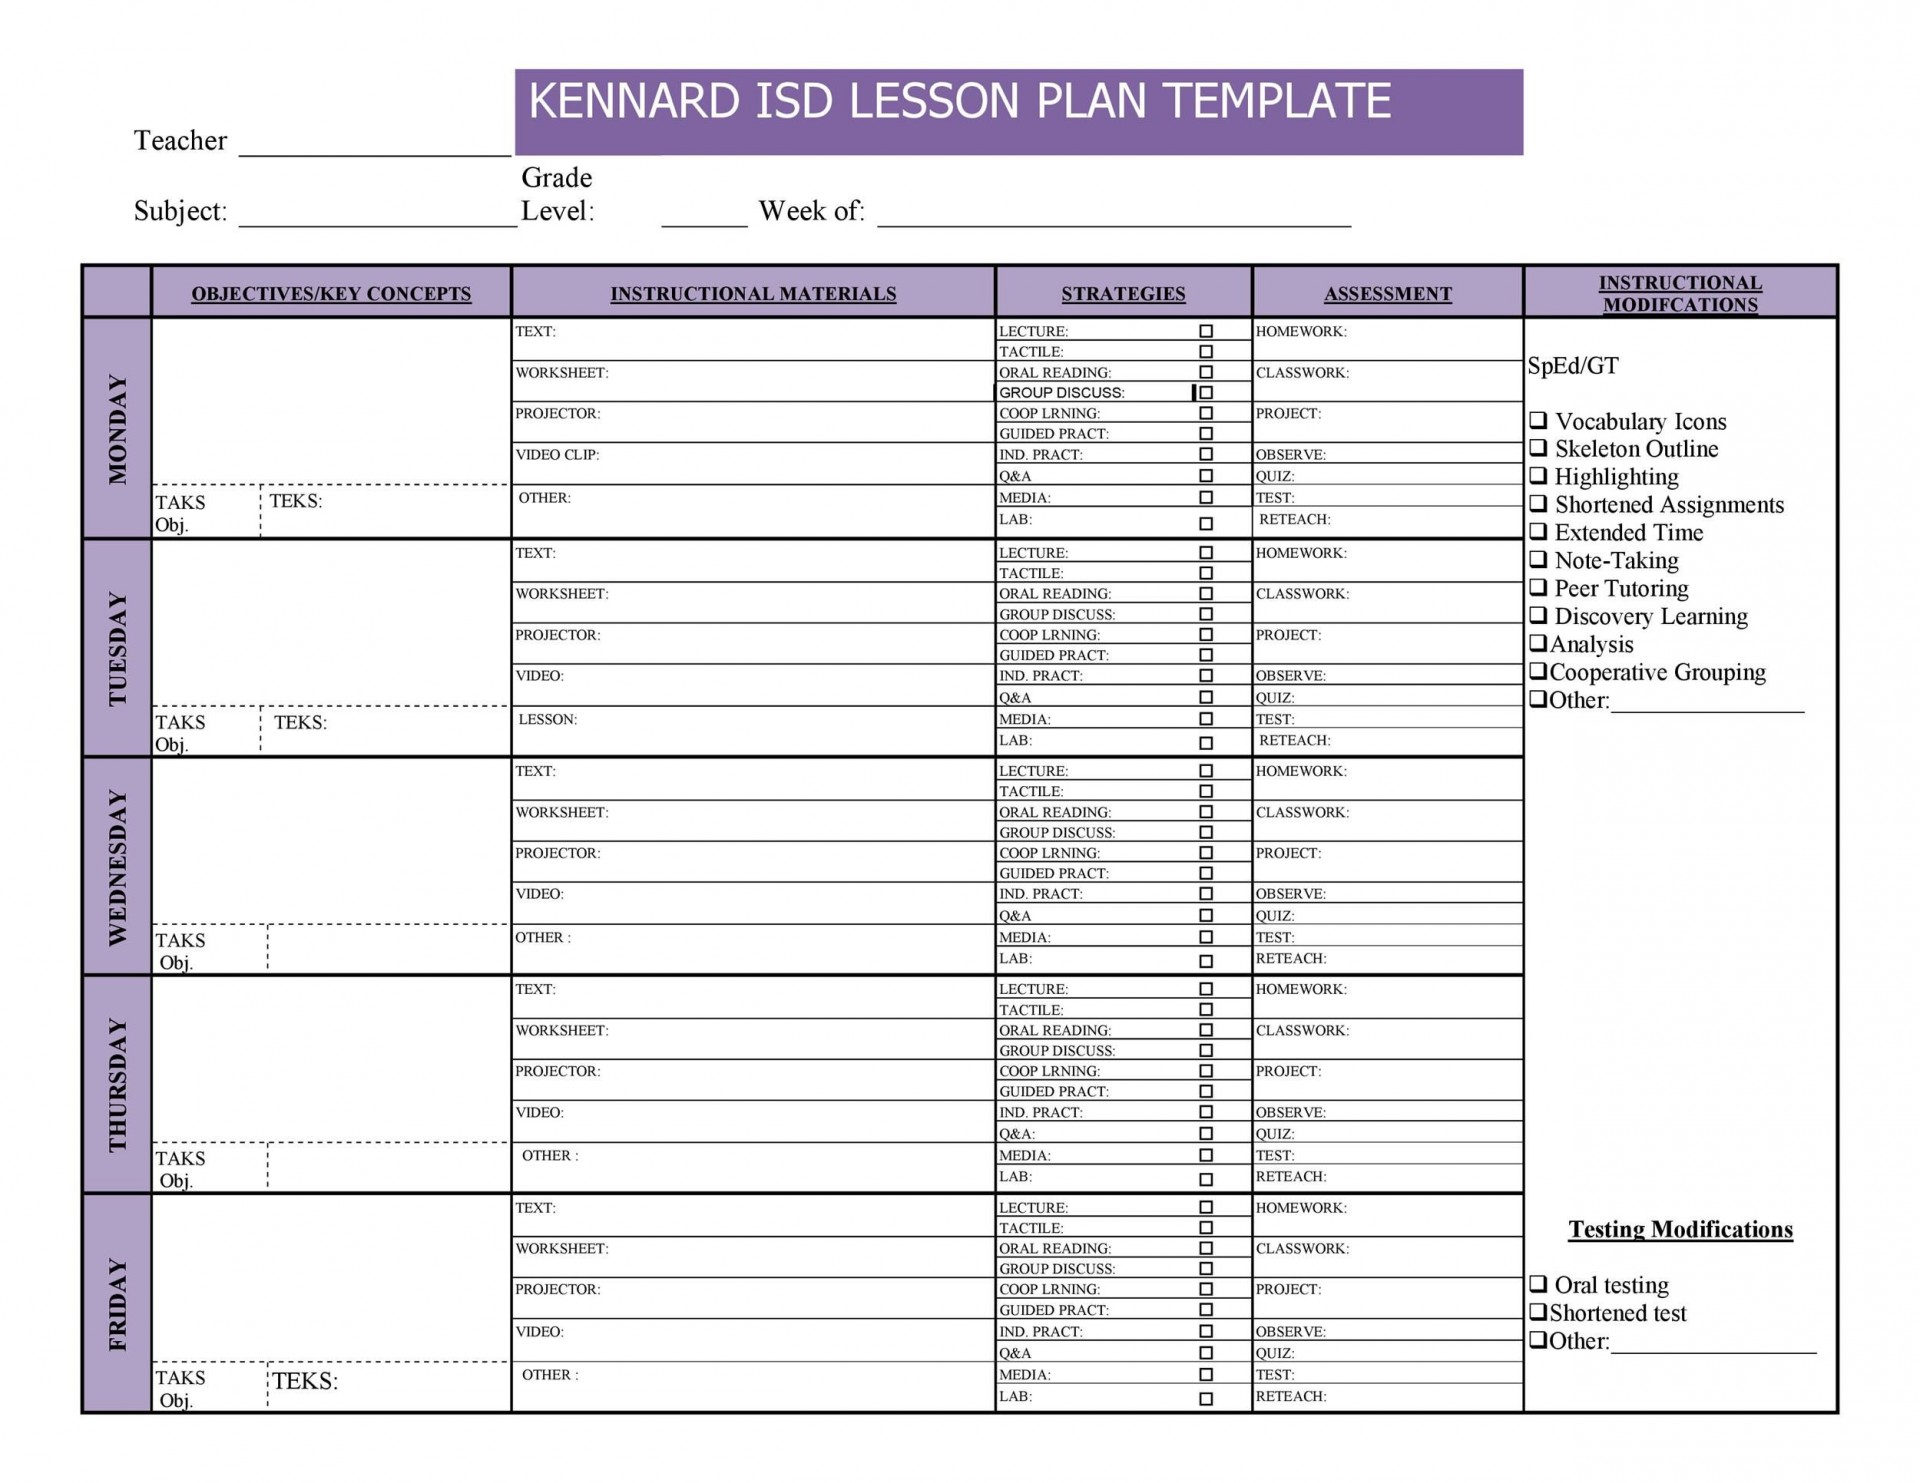 004 Outstanding Weekly Lesson Plan Template High School Image  For Science Teacher Math Example English Pdf1920